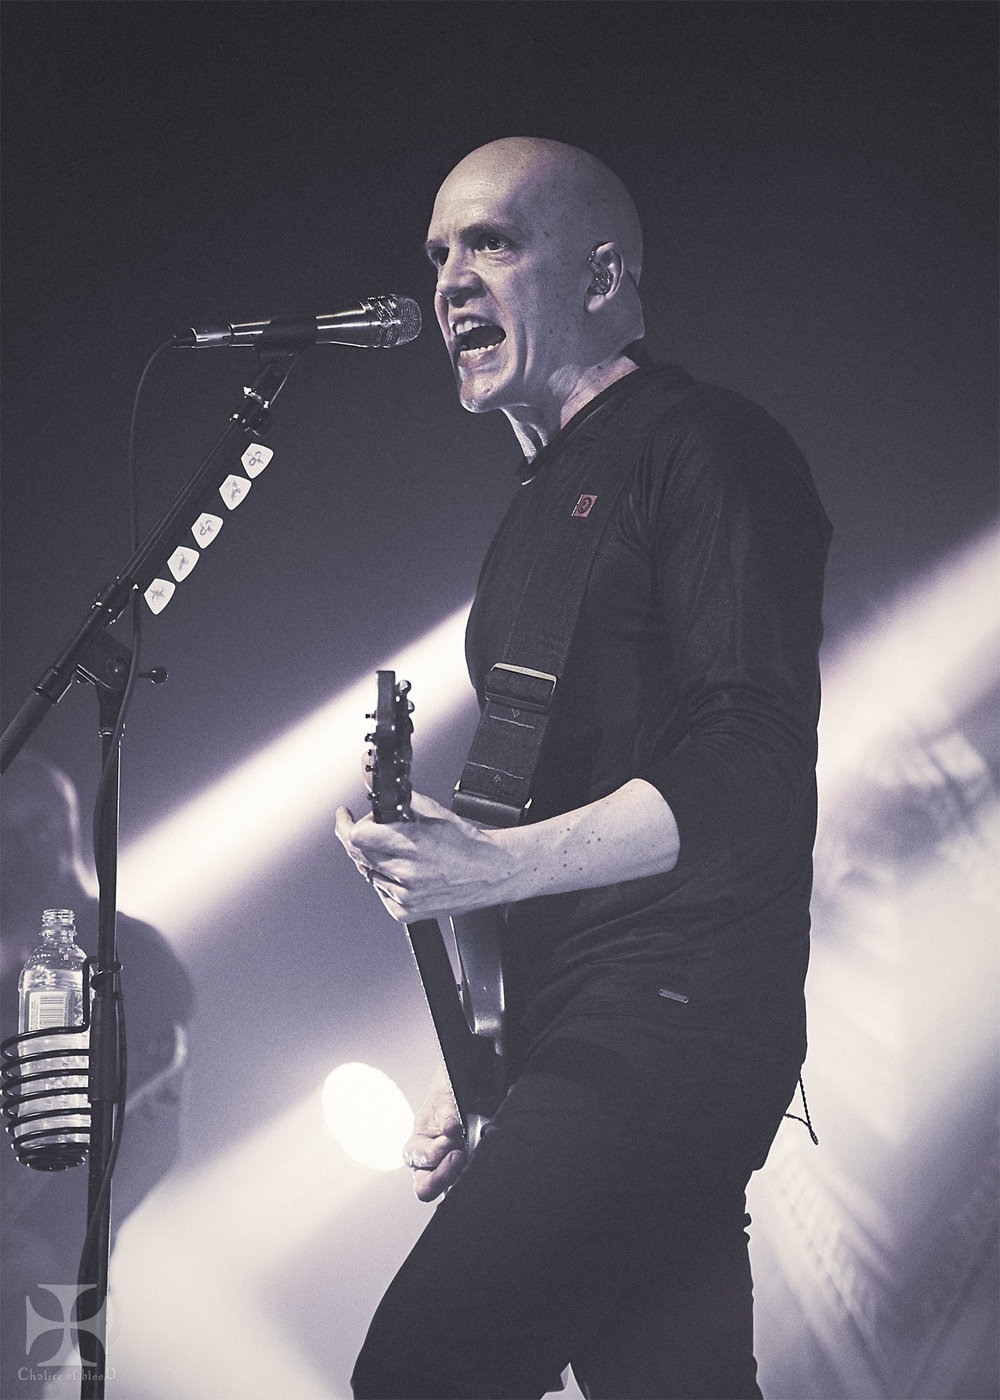 2017.05-Devin-Townsend---22-Exposure-watermarked.jpg